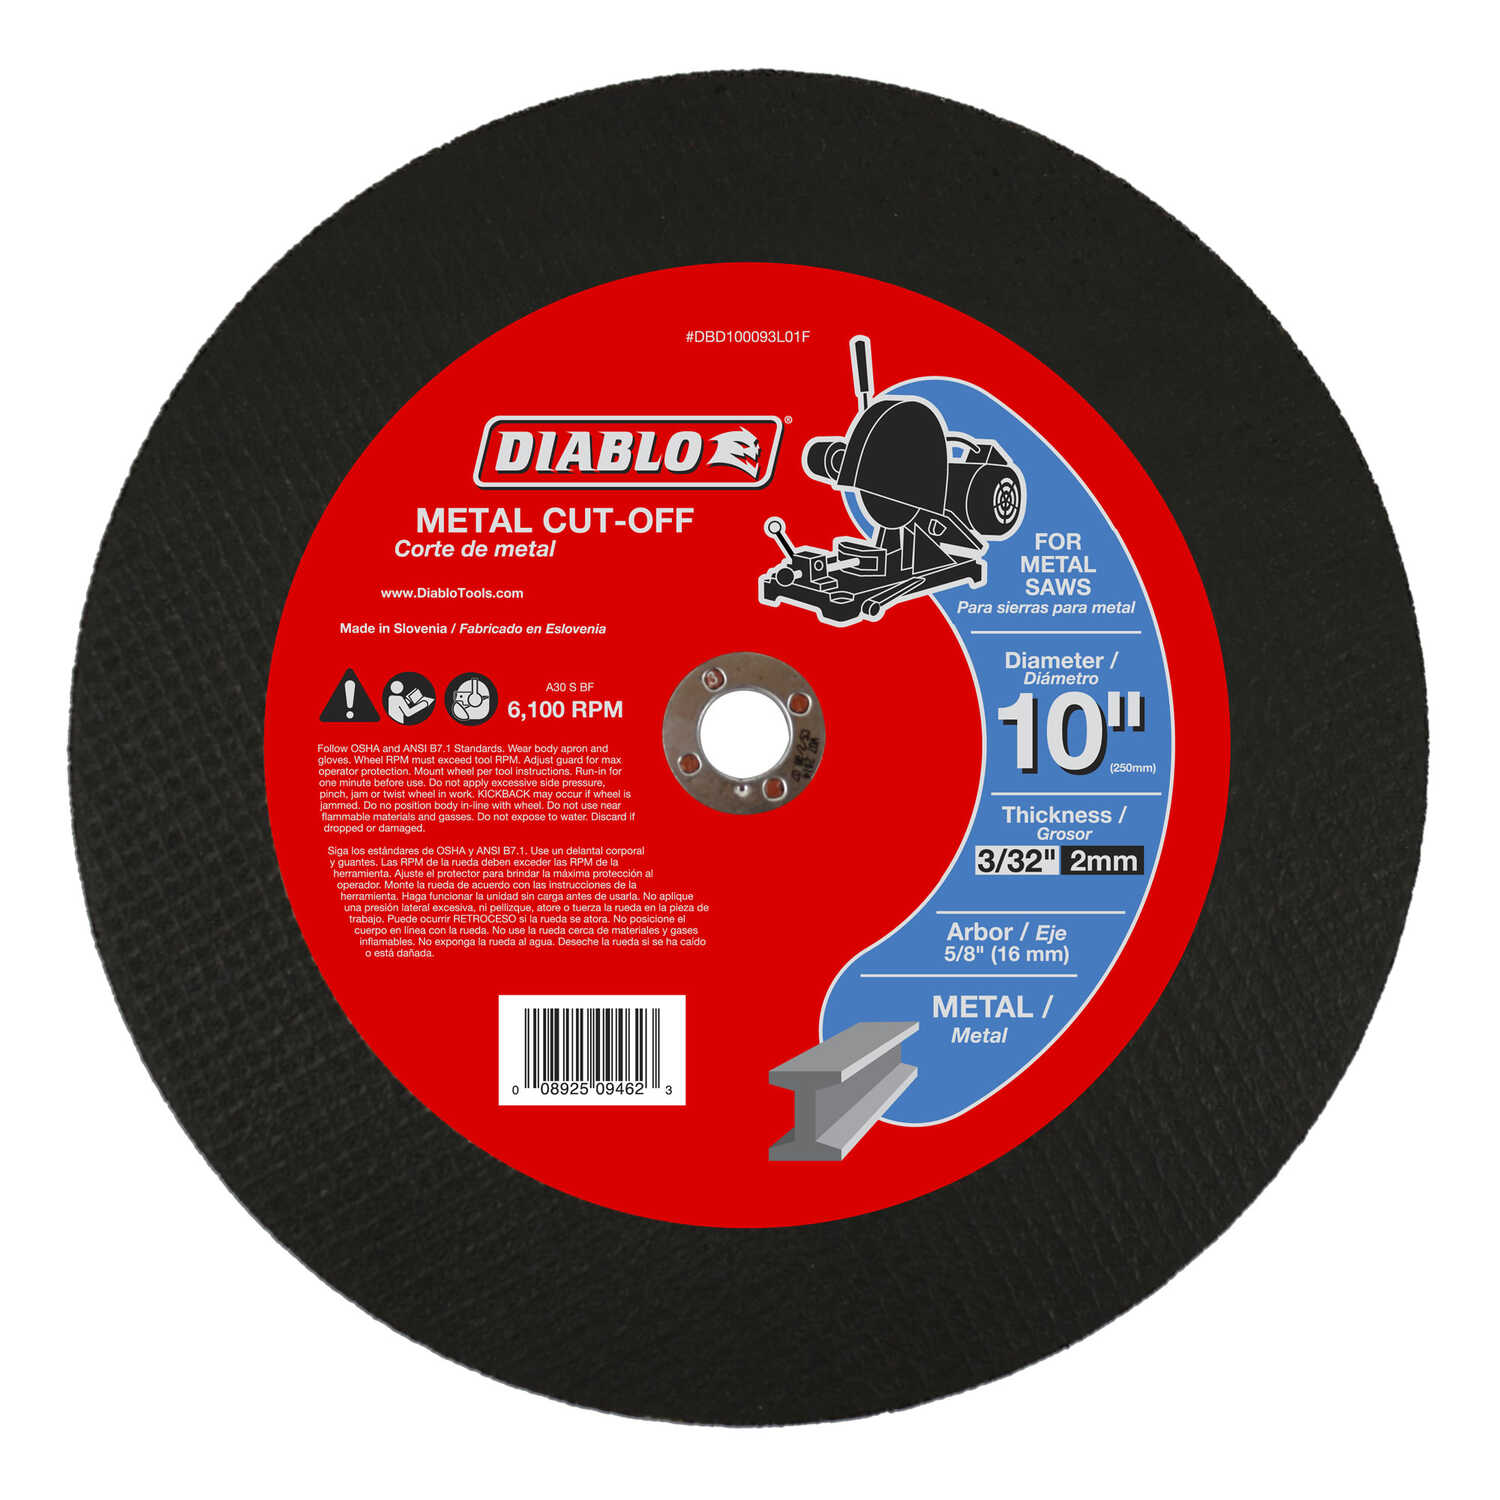 Diablo  10 in. Aluminum Oxide  Metal Cut-Off Disc  3/32 in.  x 5/8 in.   1 pk